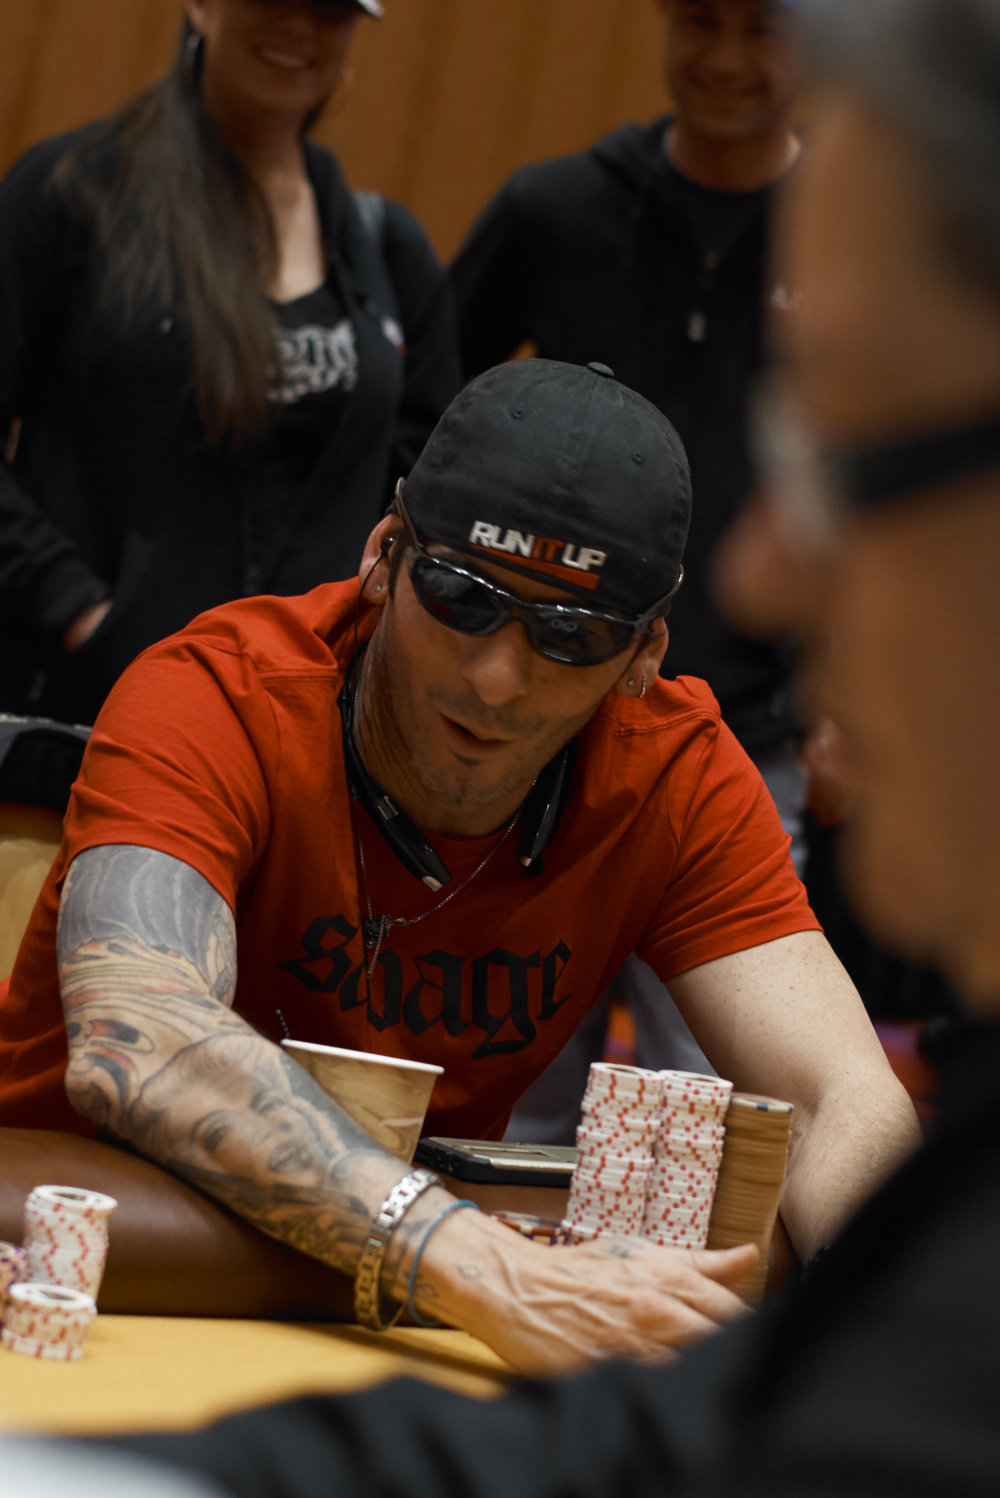 Chip leader Jason Daniele